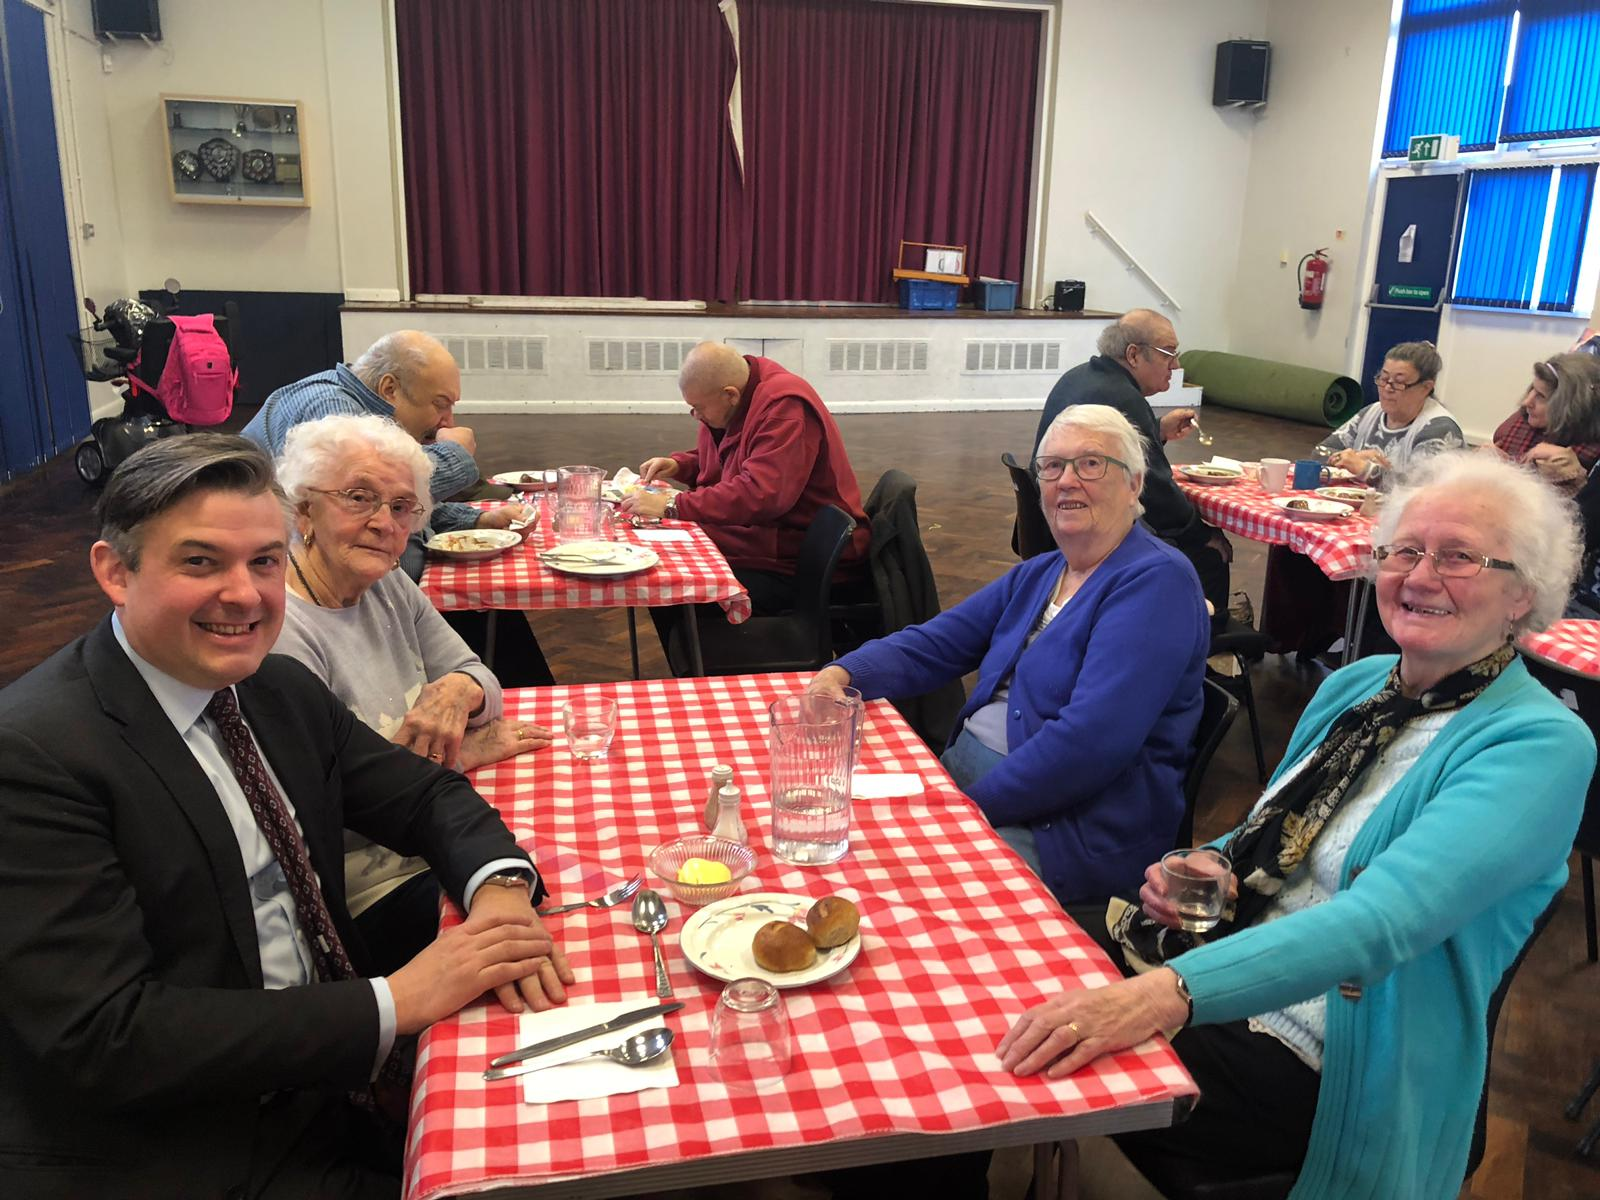 Jon drops into the Lunch Club at Eyres Monsell Community Centre - Friday February 1 2019